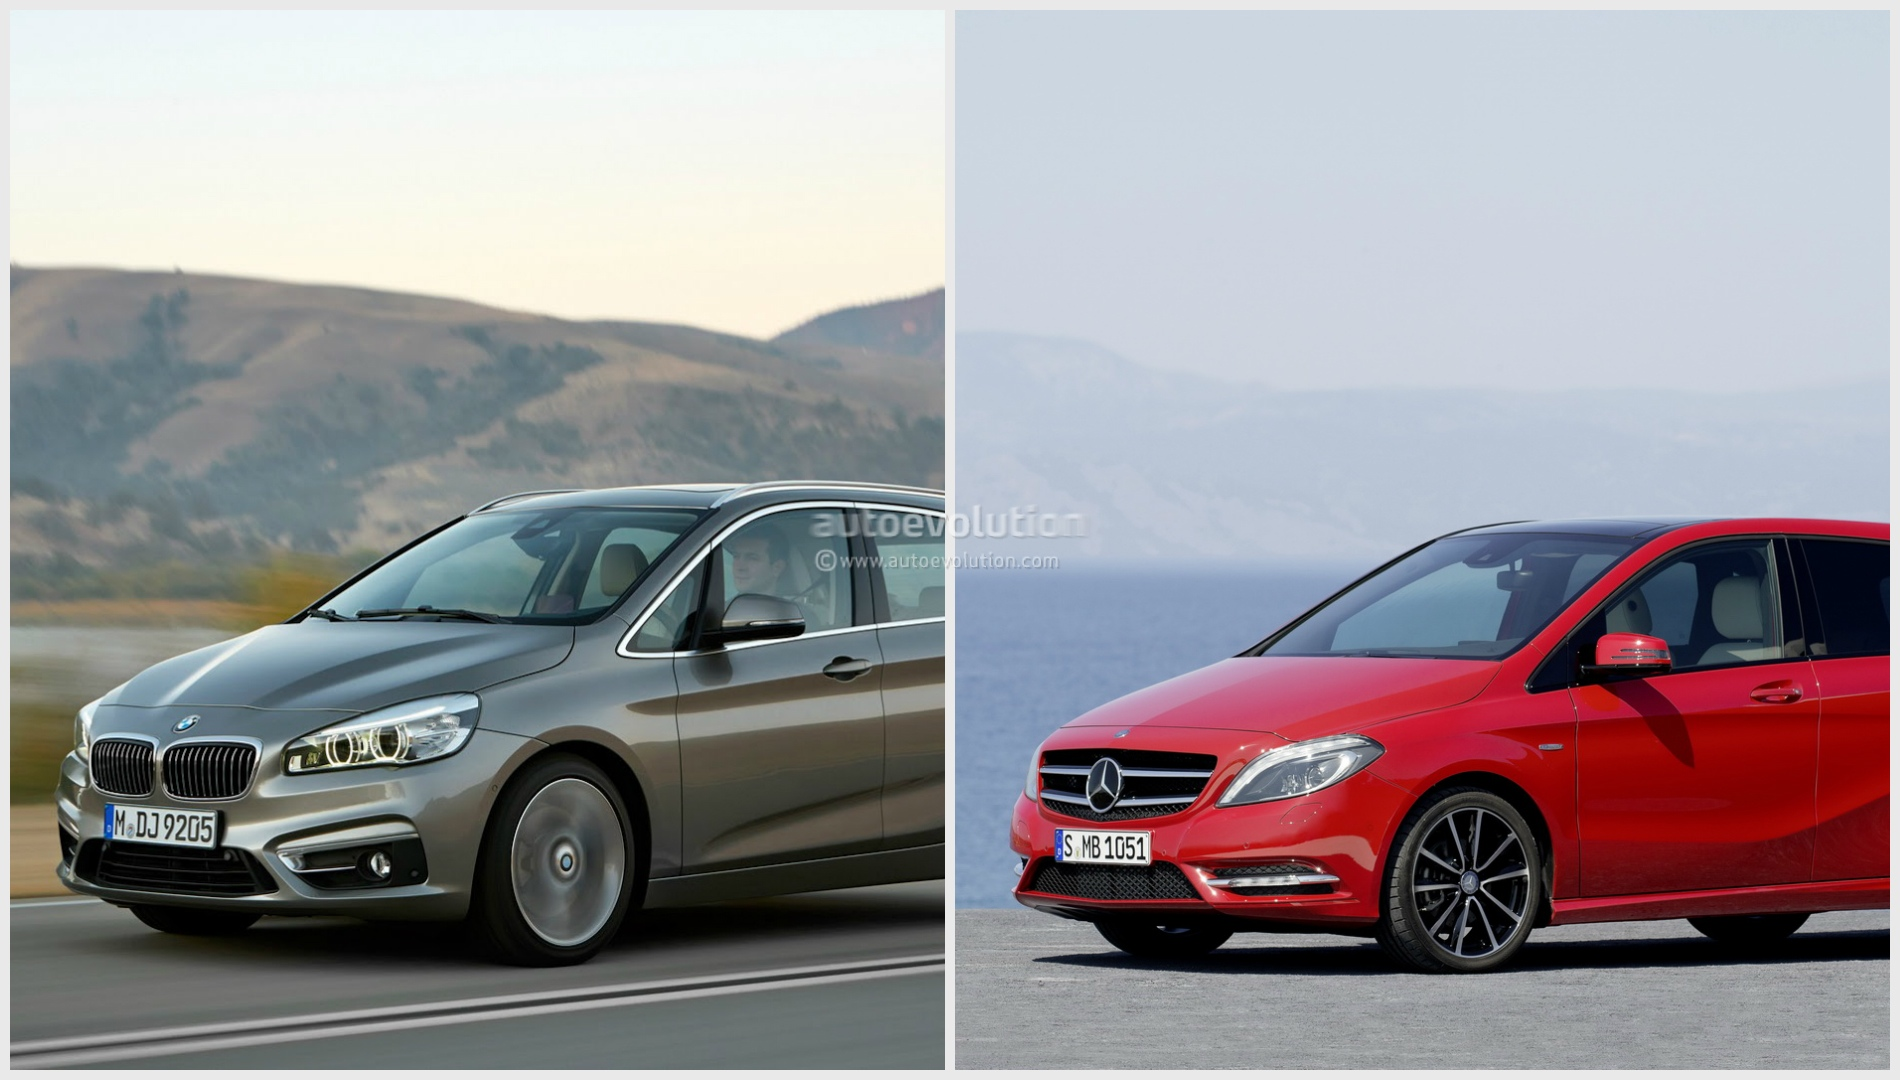 Bmw 2 series vs mercedes benz b class photo comparison for Mercedes benz bclass